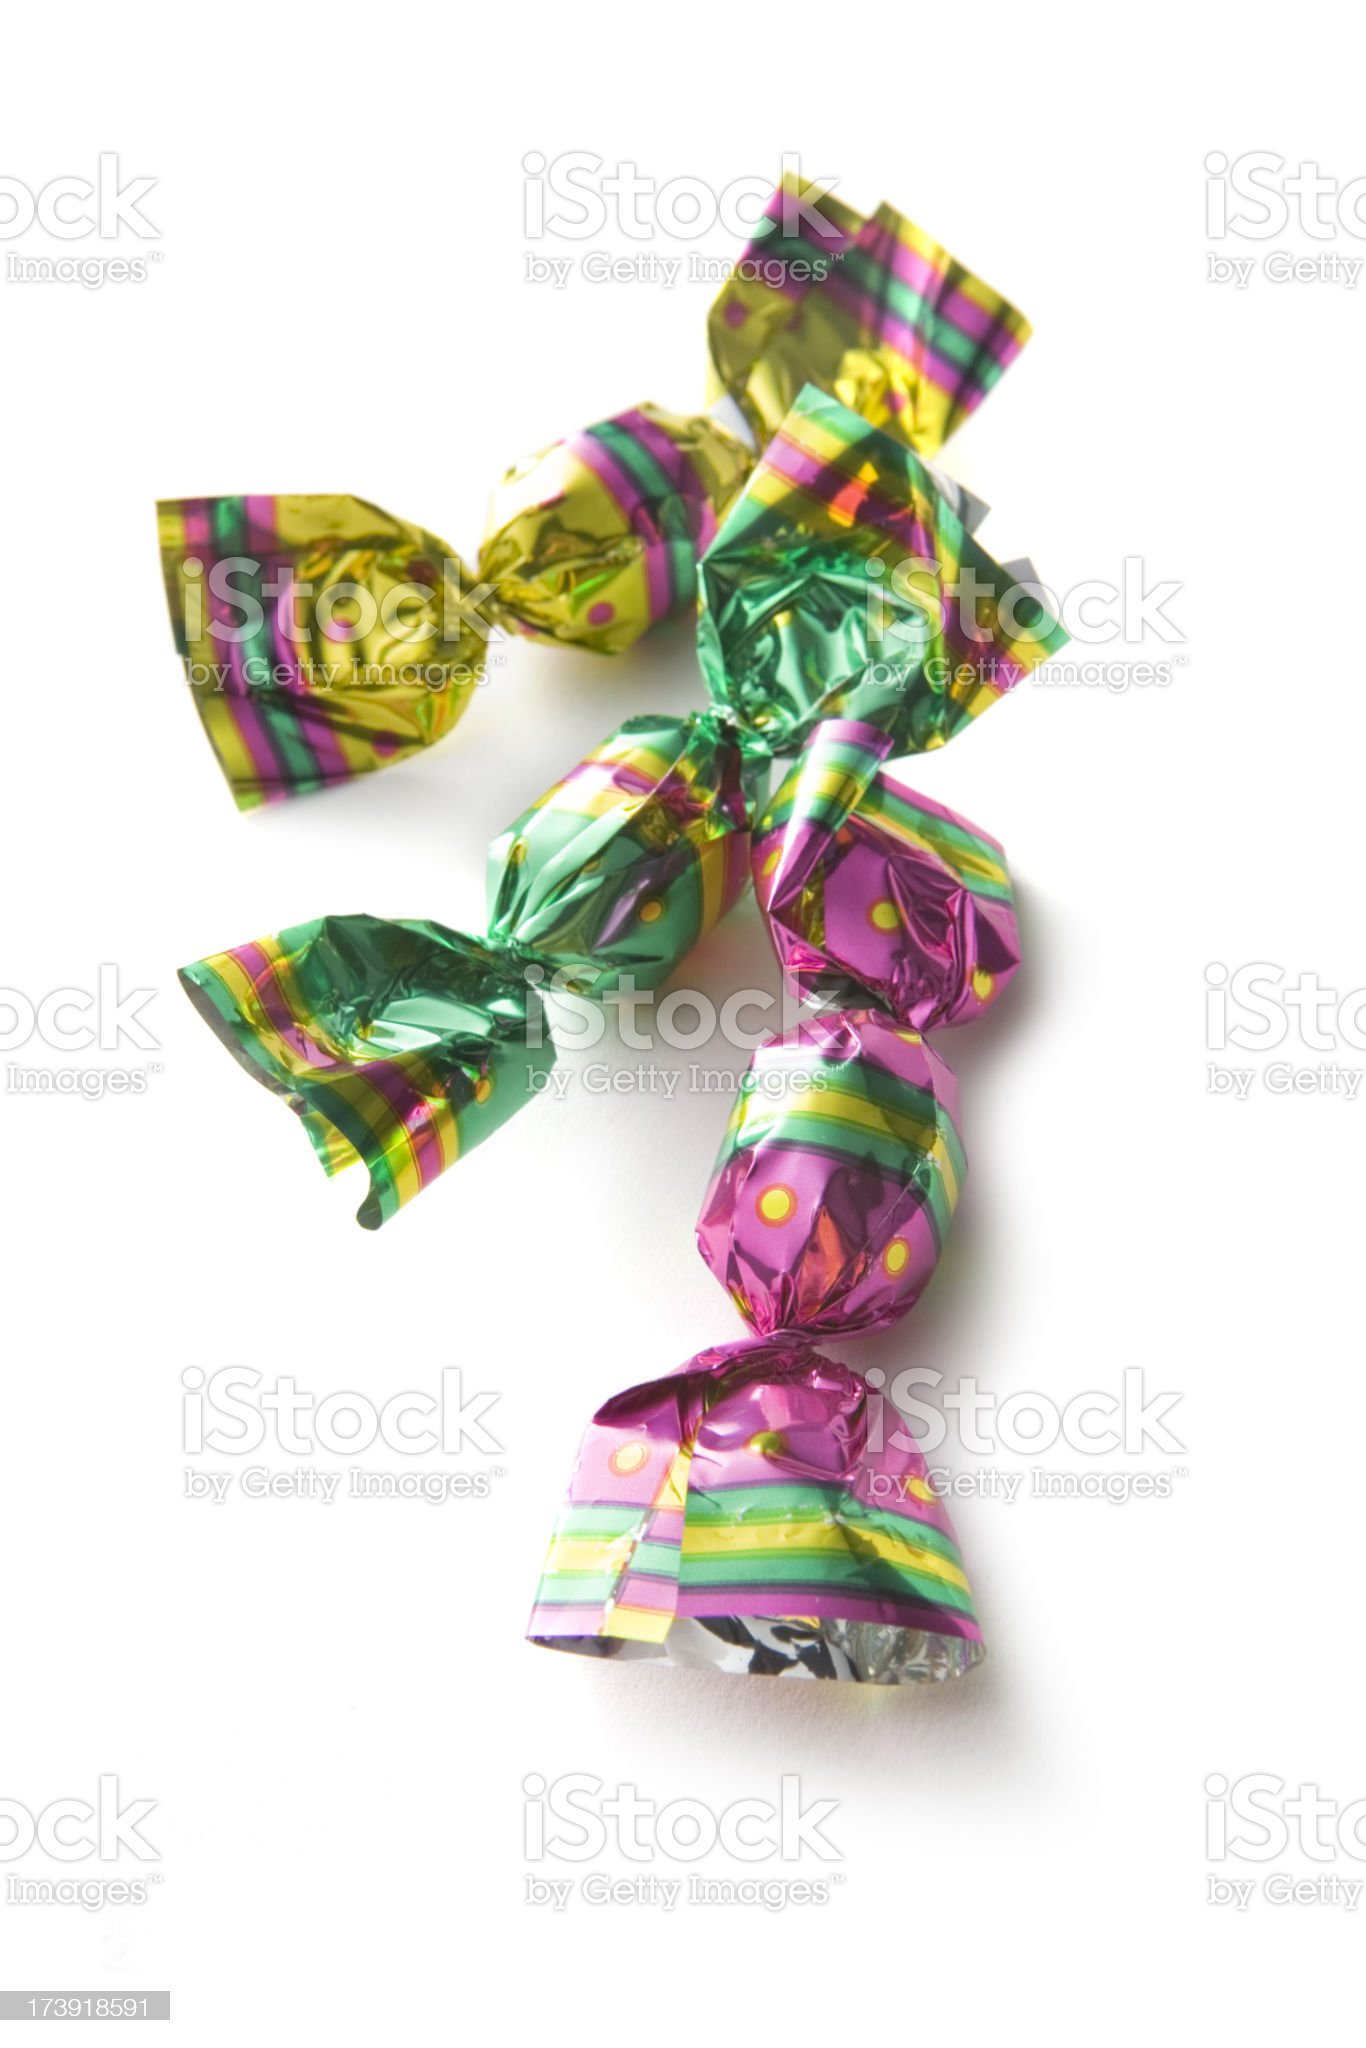 Candy: Sweets royalty-free stock photo